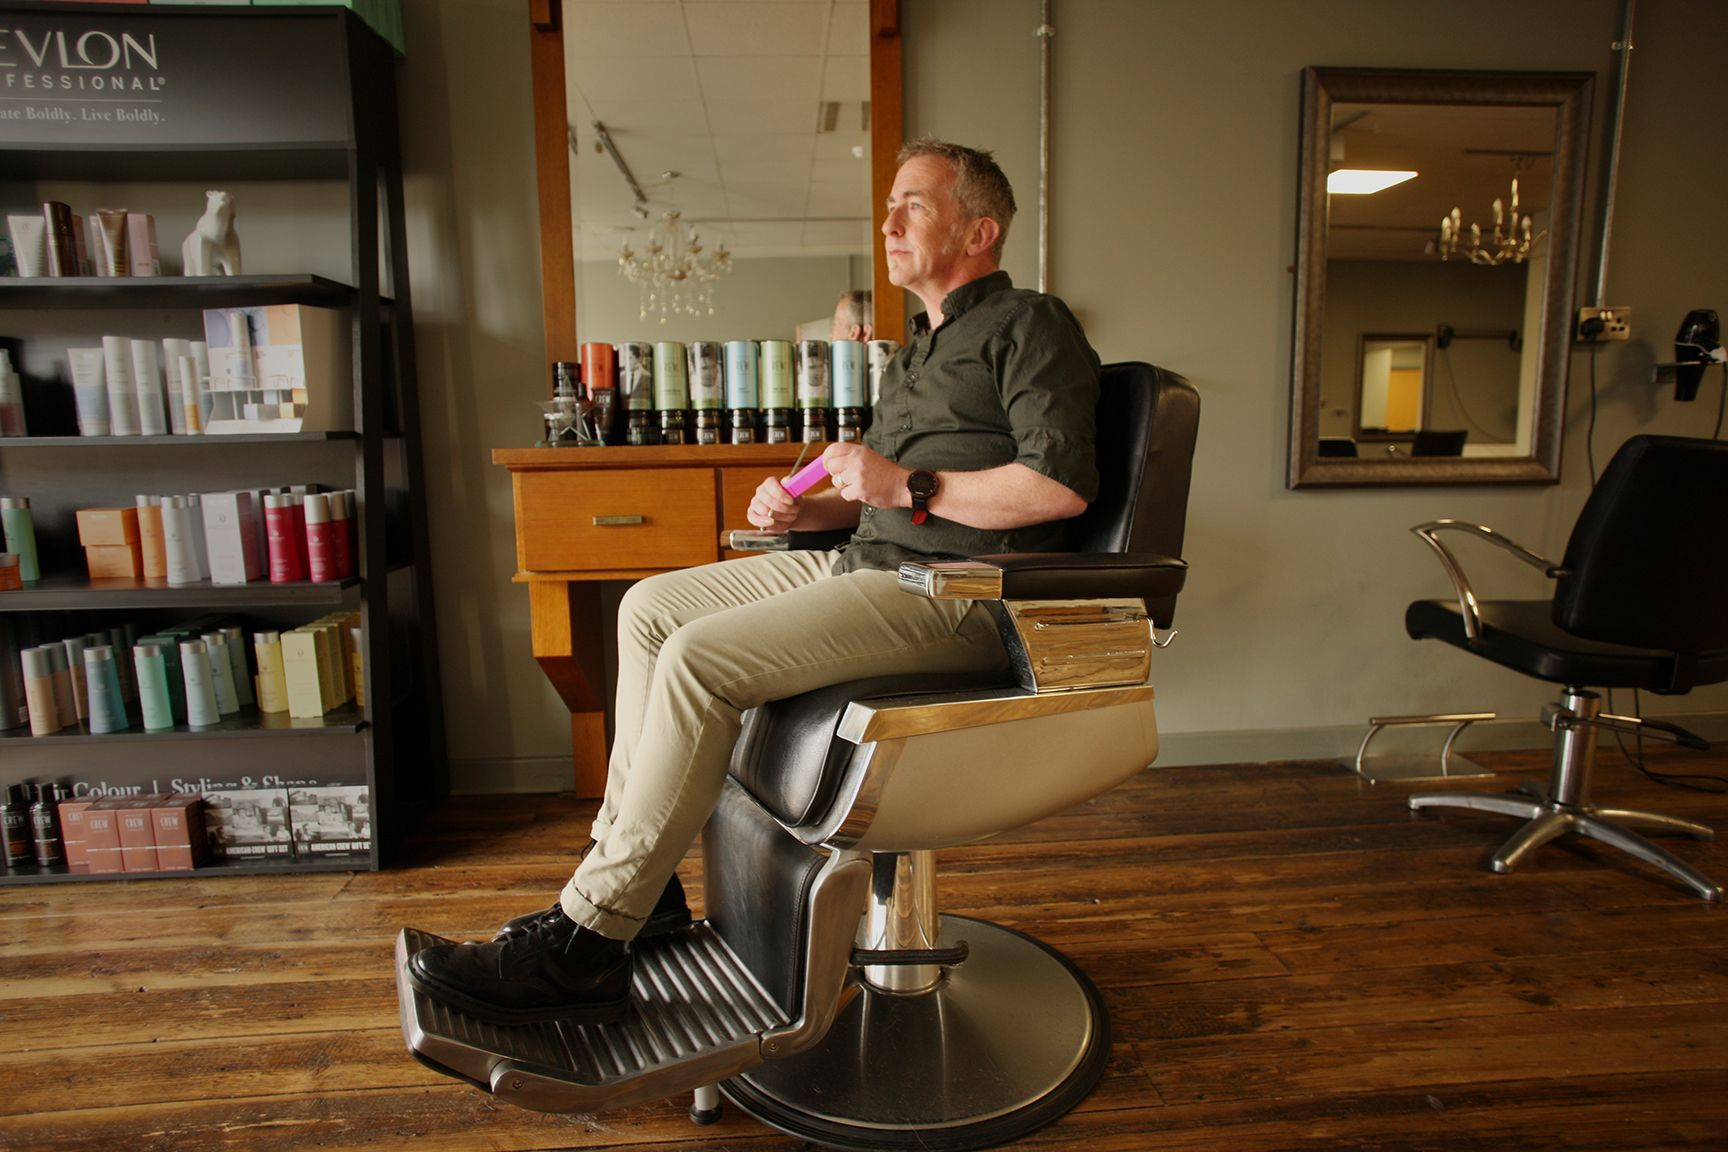 BACK ON TOP: Paul Carlin of Carlin Hair pictured in his salon just after he received news of the last lockdown.